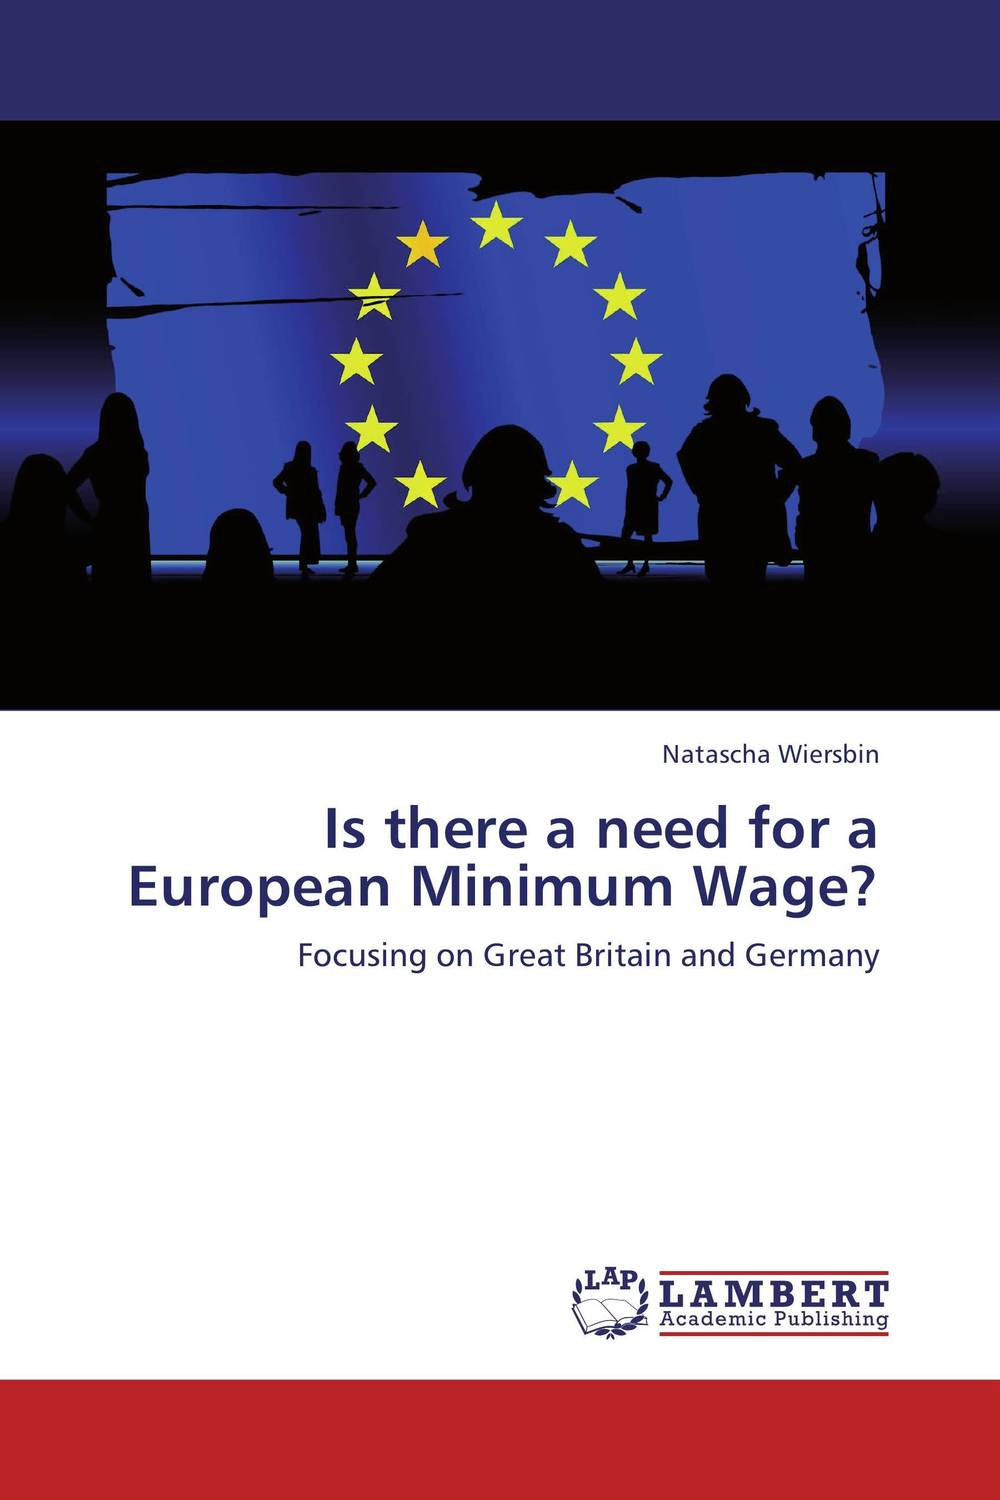 Is there a need for a European Minimum Wage?